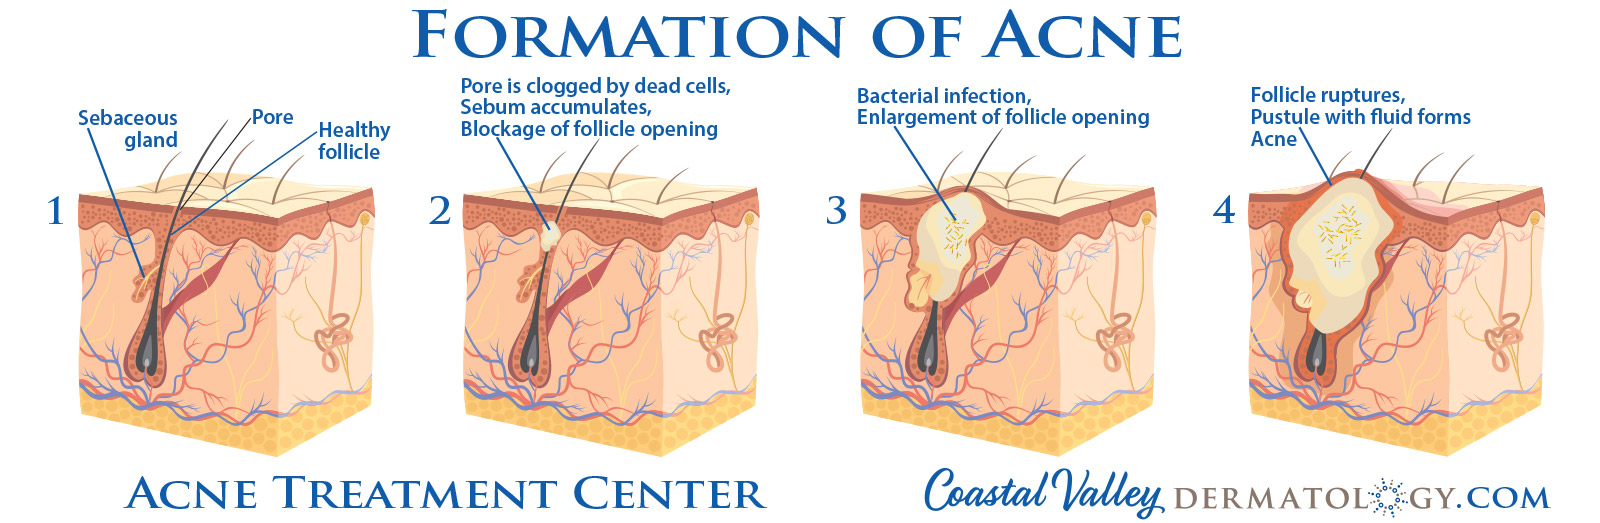 coastal-valley-dermatology-carmel-formation-of-acne-photo